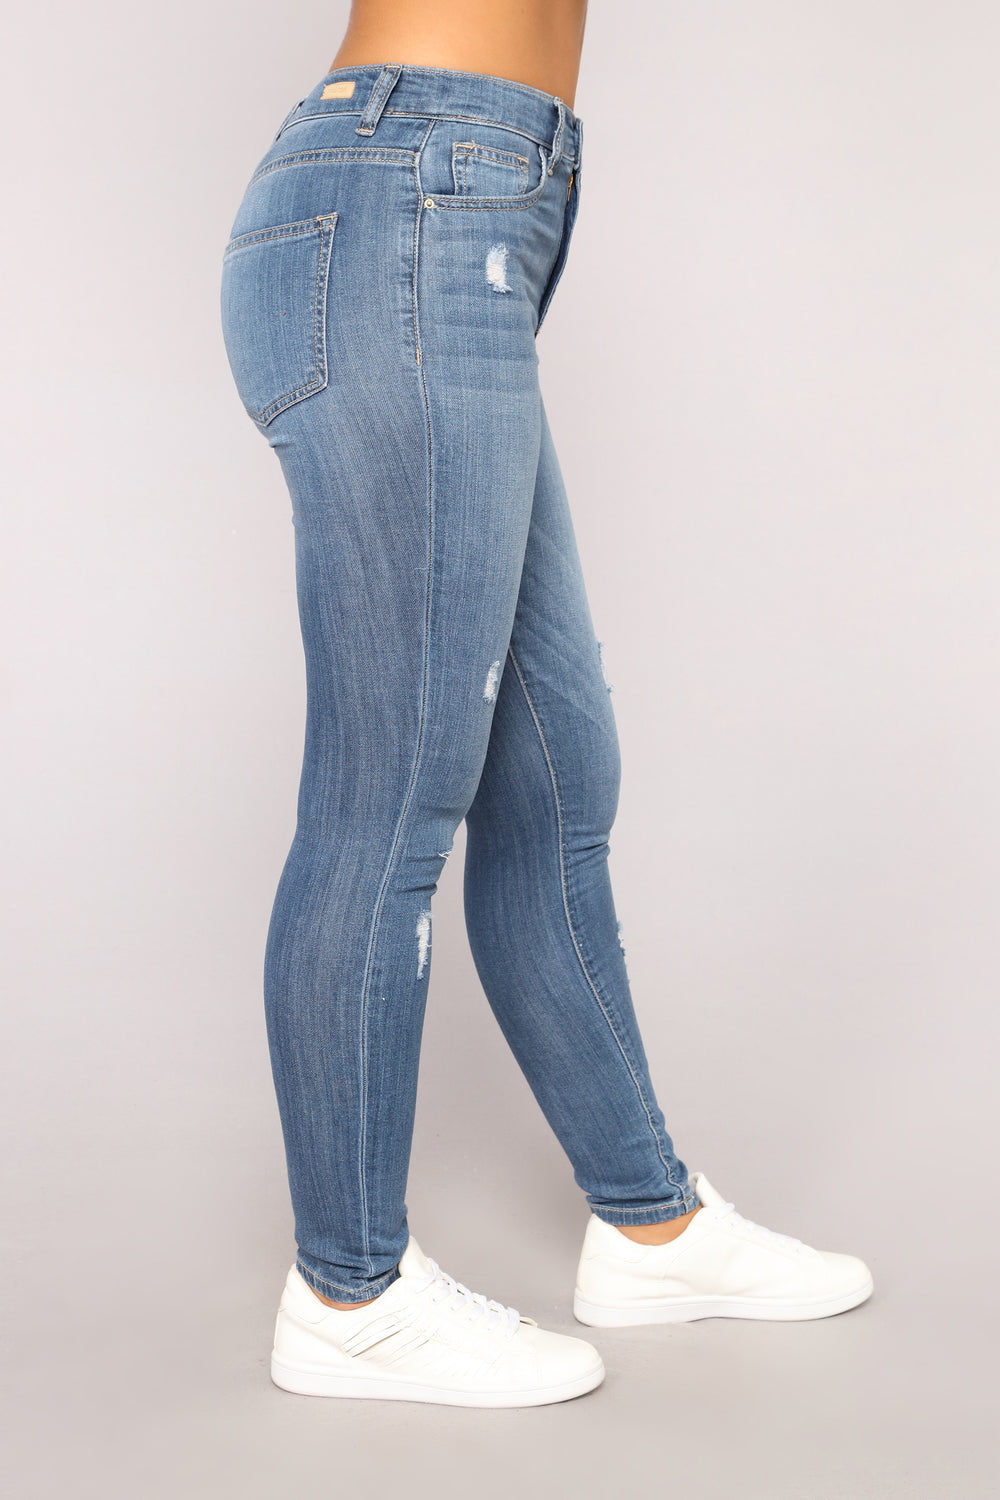 One Step Up Skinny Jeans - Medium Blue Wash